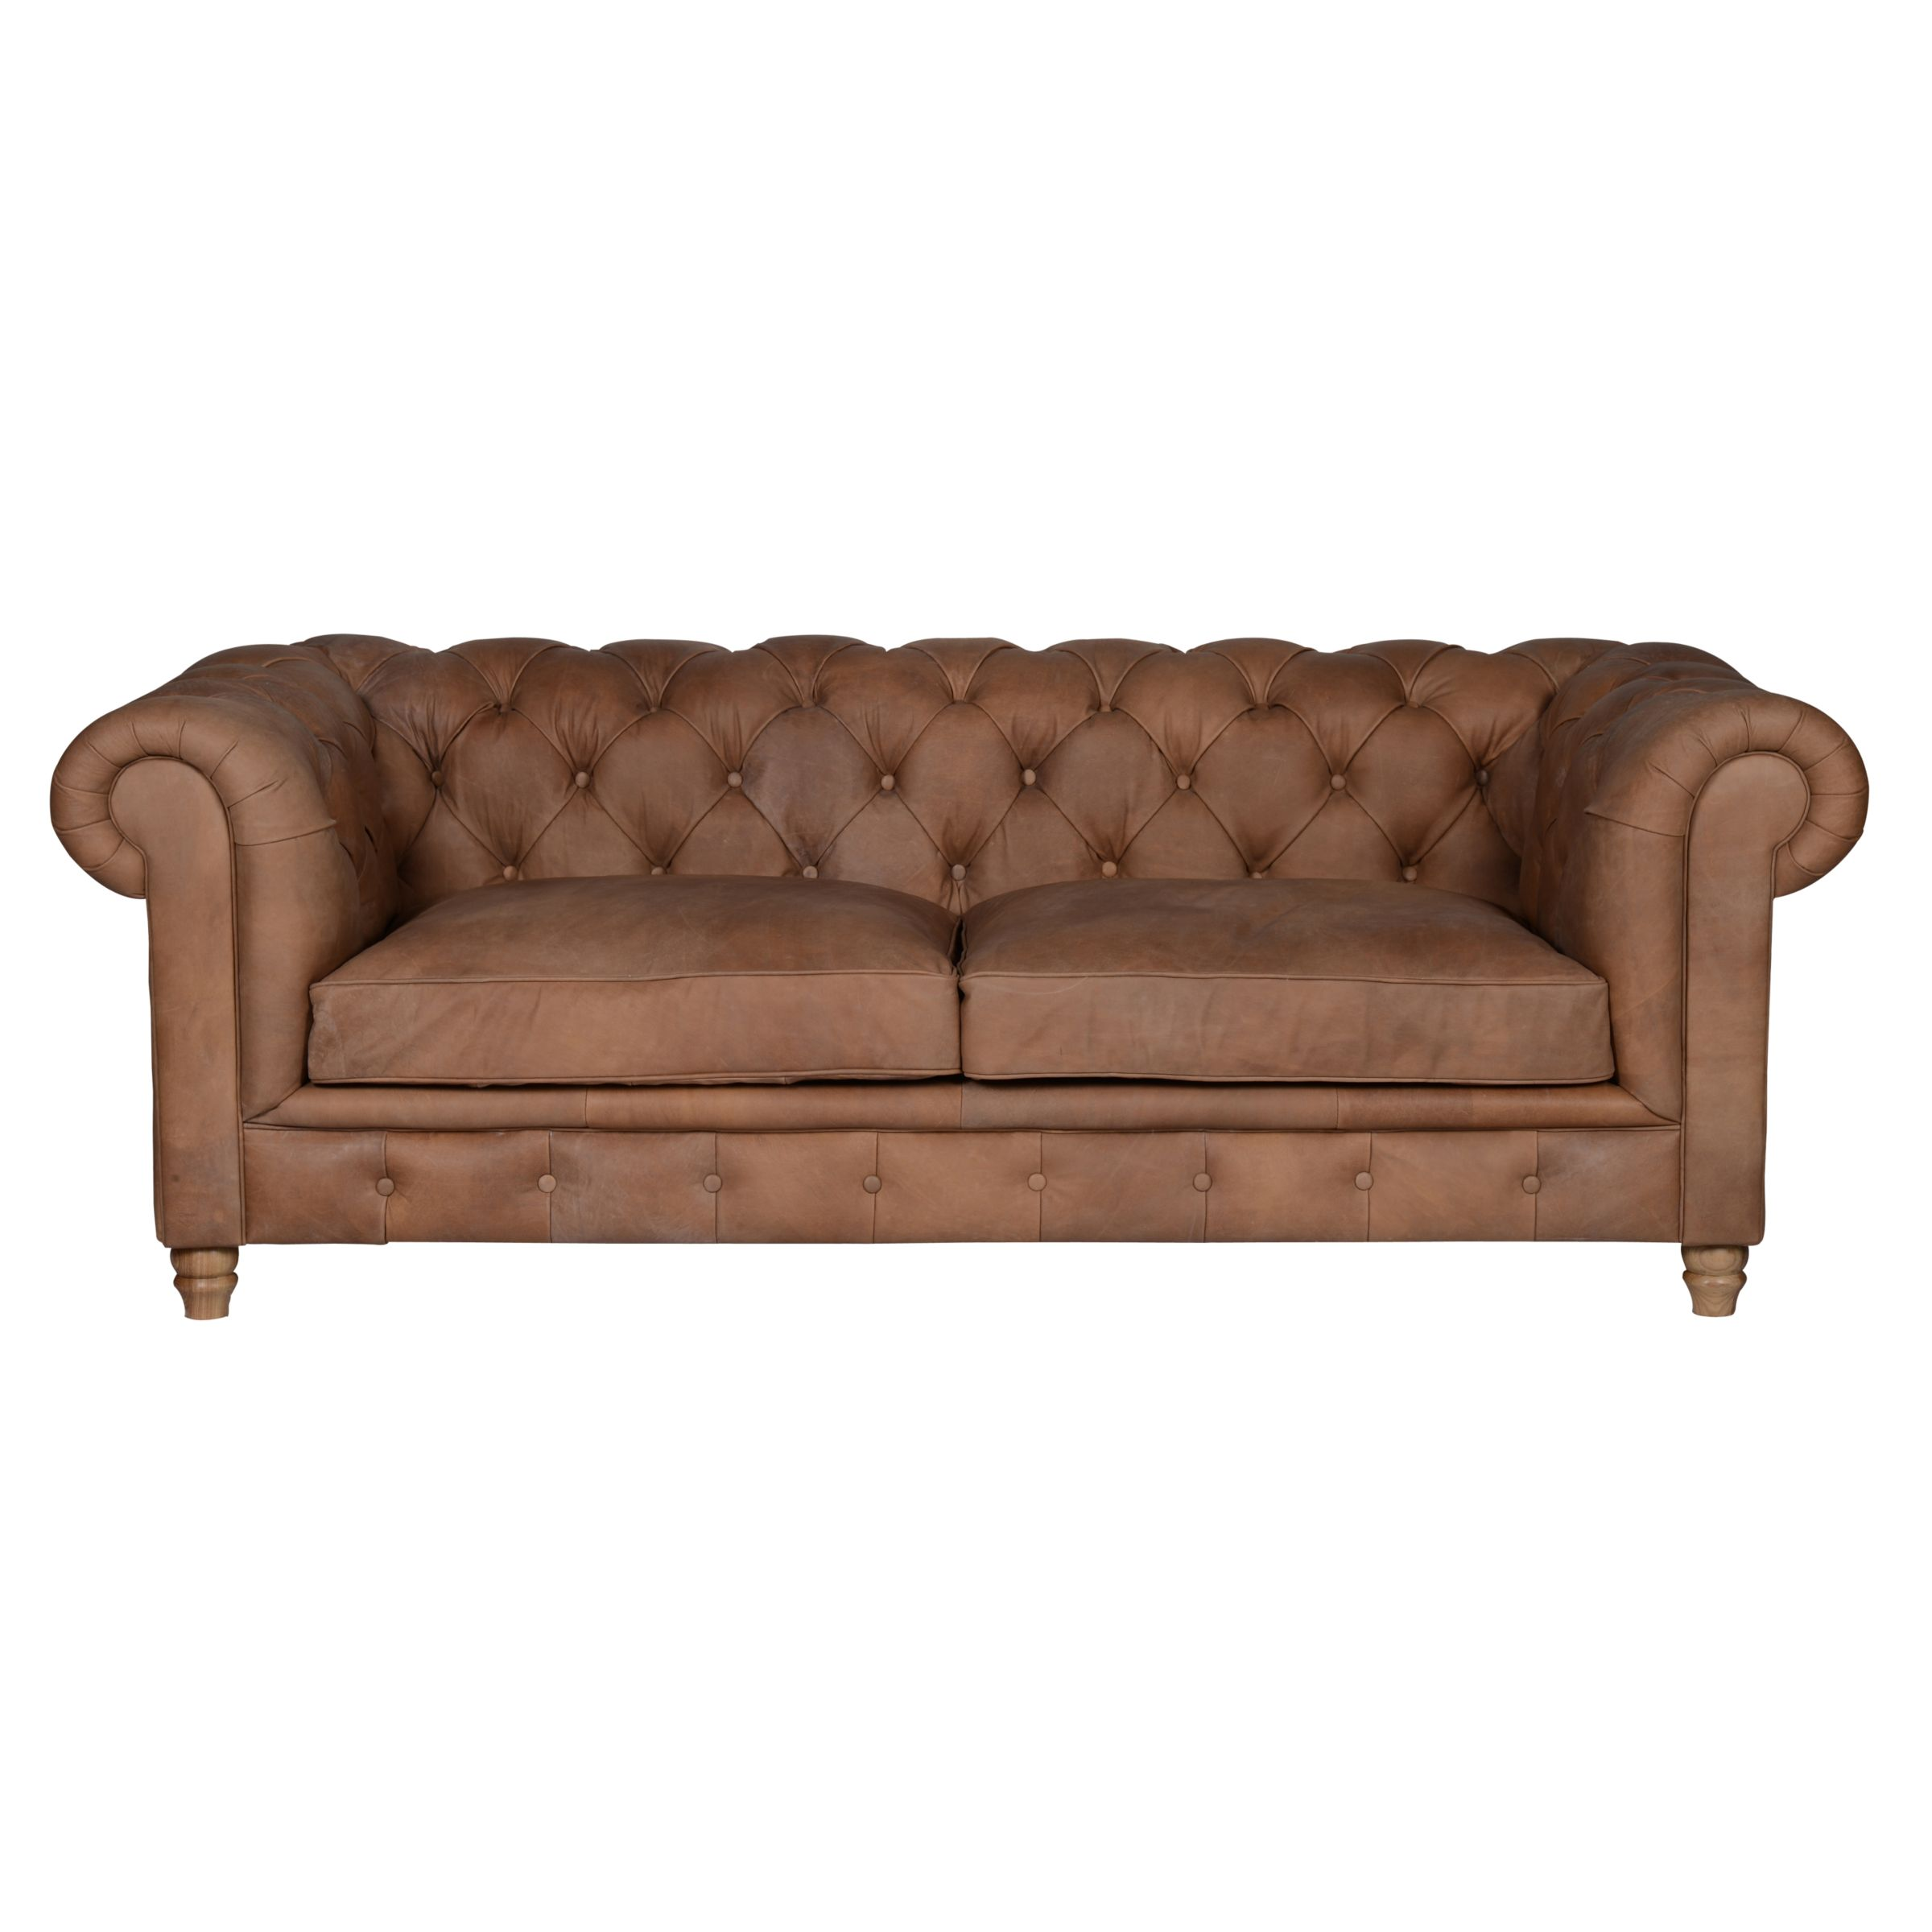 Halo Halo Earle Grand Chesterfield Leather Sofa